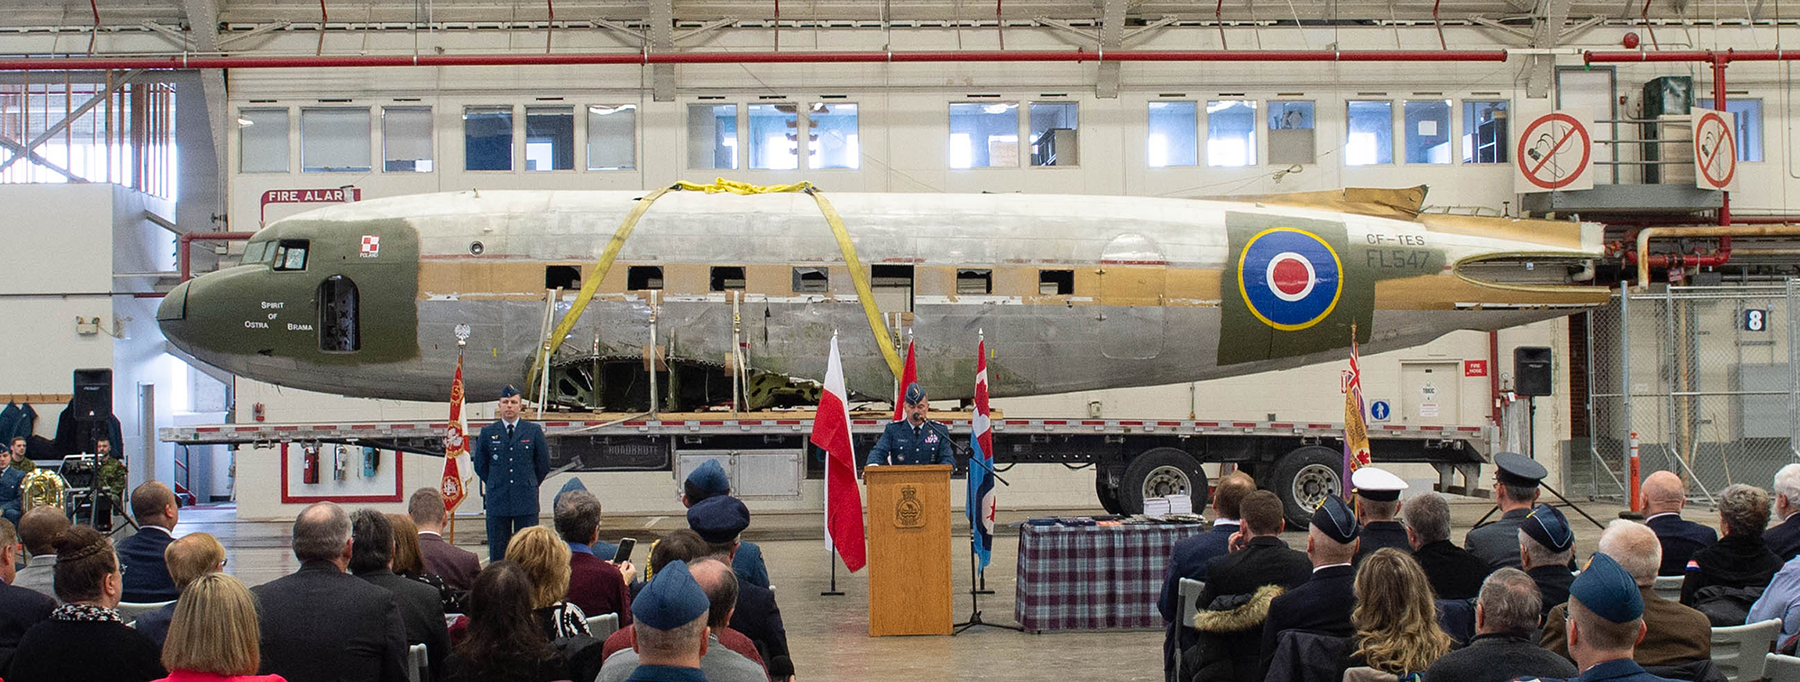 Inside a large building, a man stands at a lectern, addressing a group of seated people. Behind him is the fuselage of a large aircraft resting on a flatbed trailer.